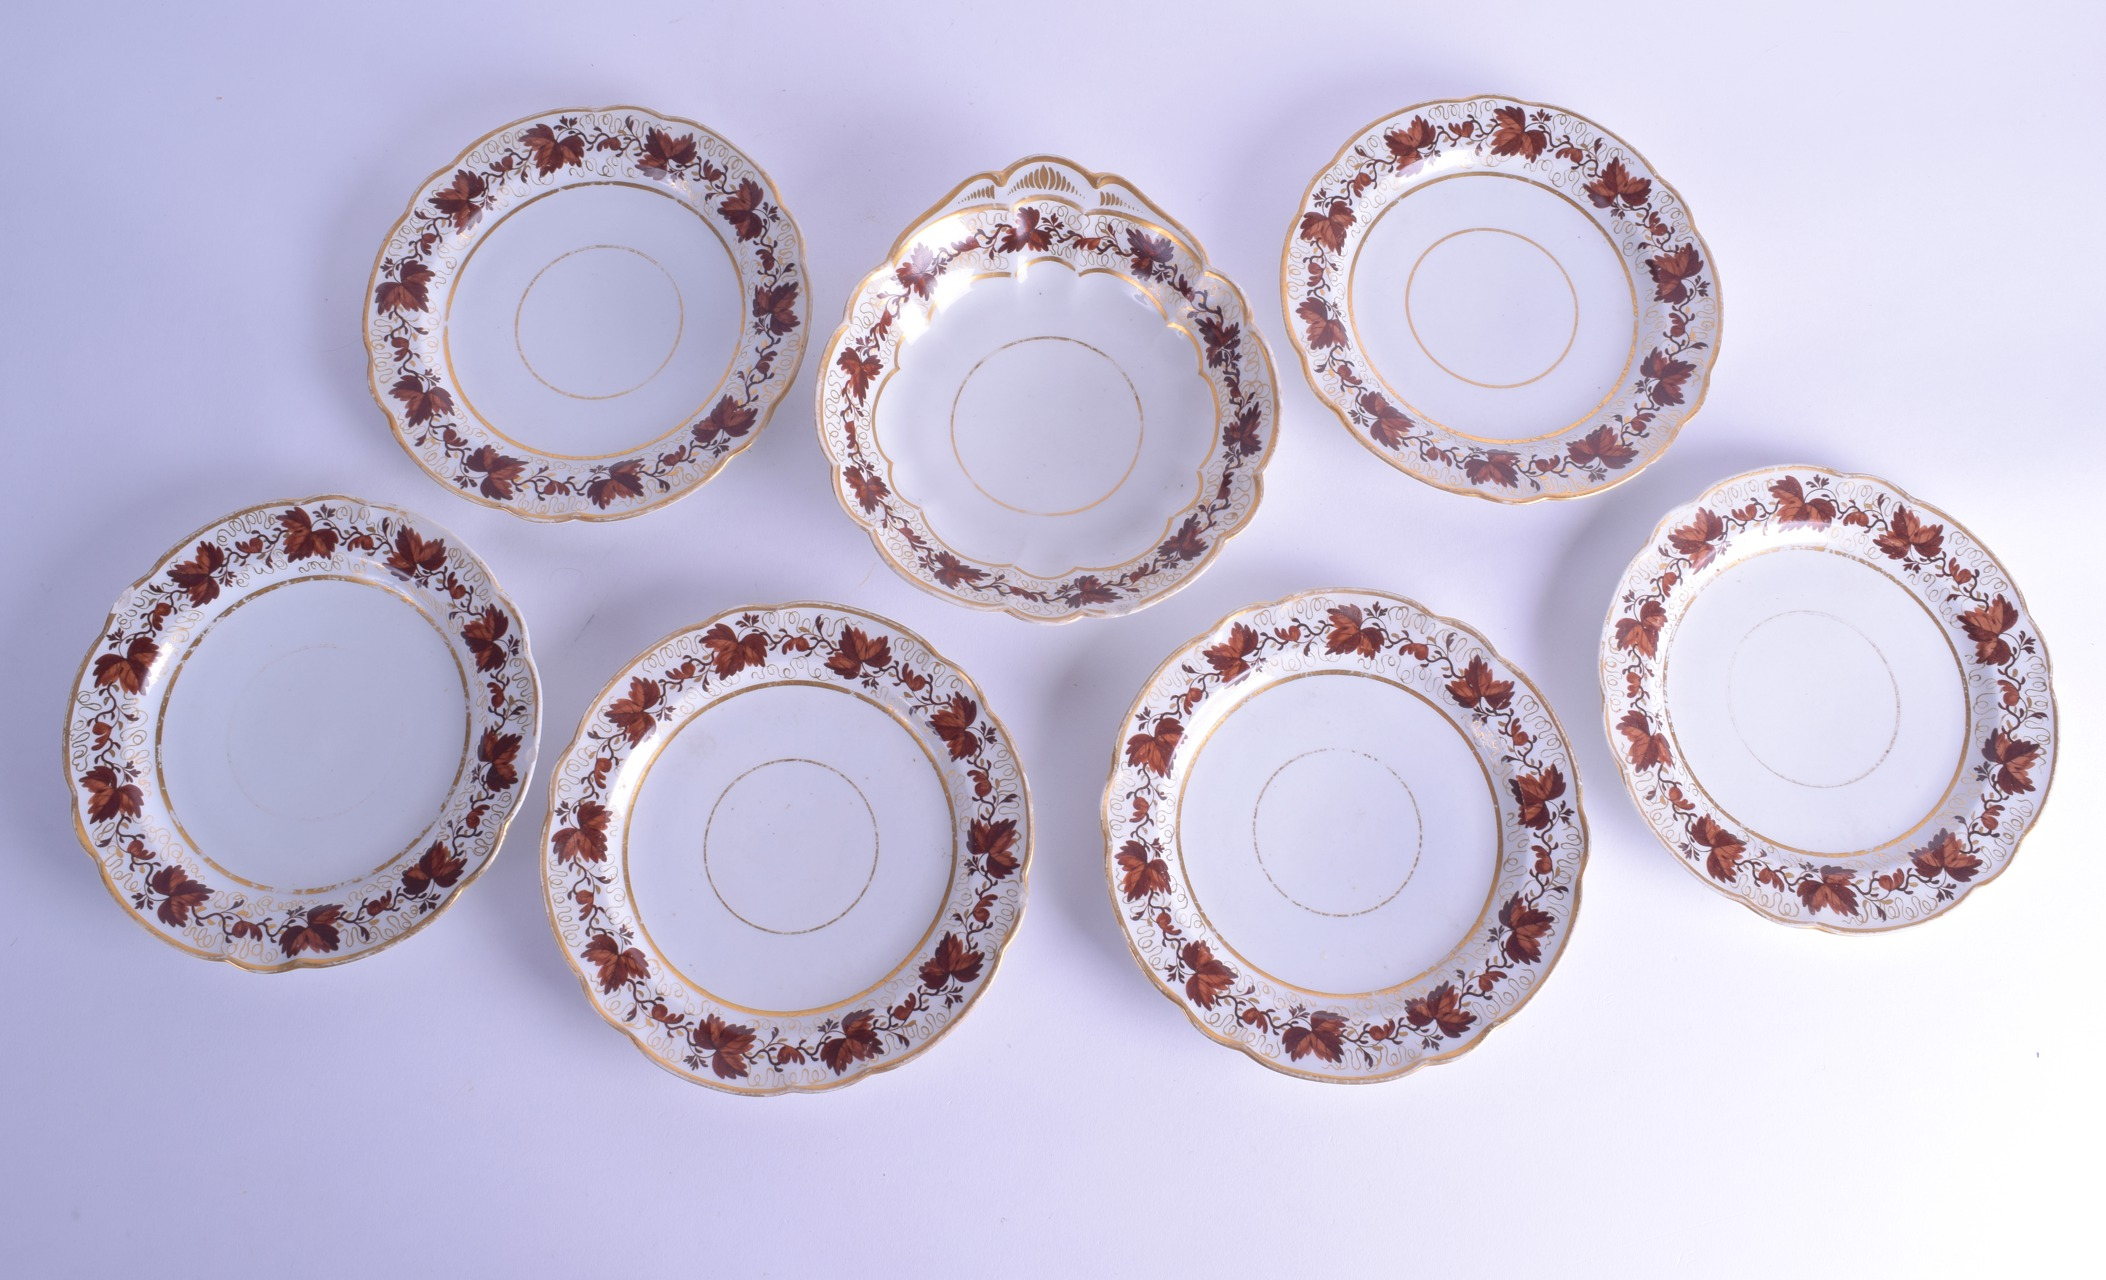 Lot 166 - Flight Barr Worcester part dessert service painted with brown oak leaves and gilding comprising 8